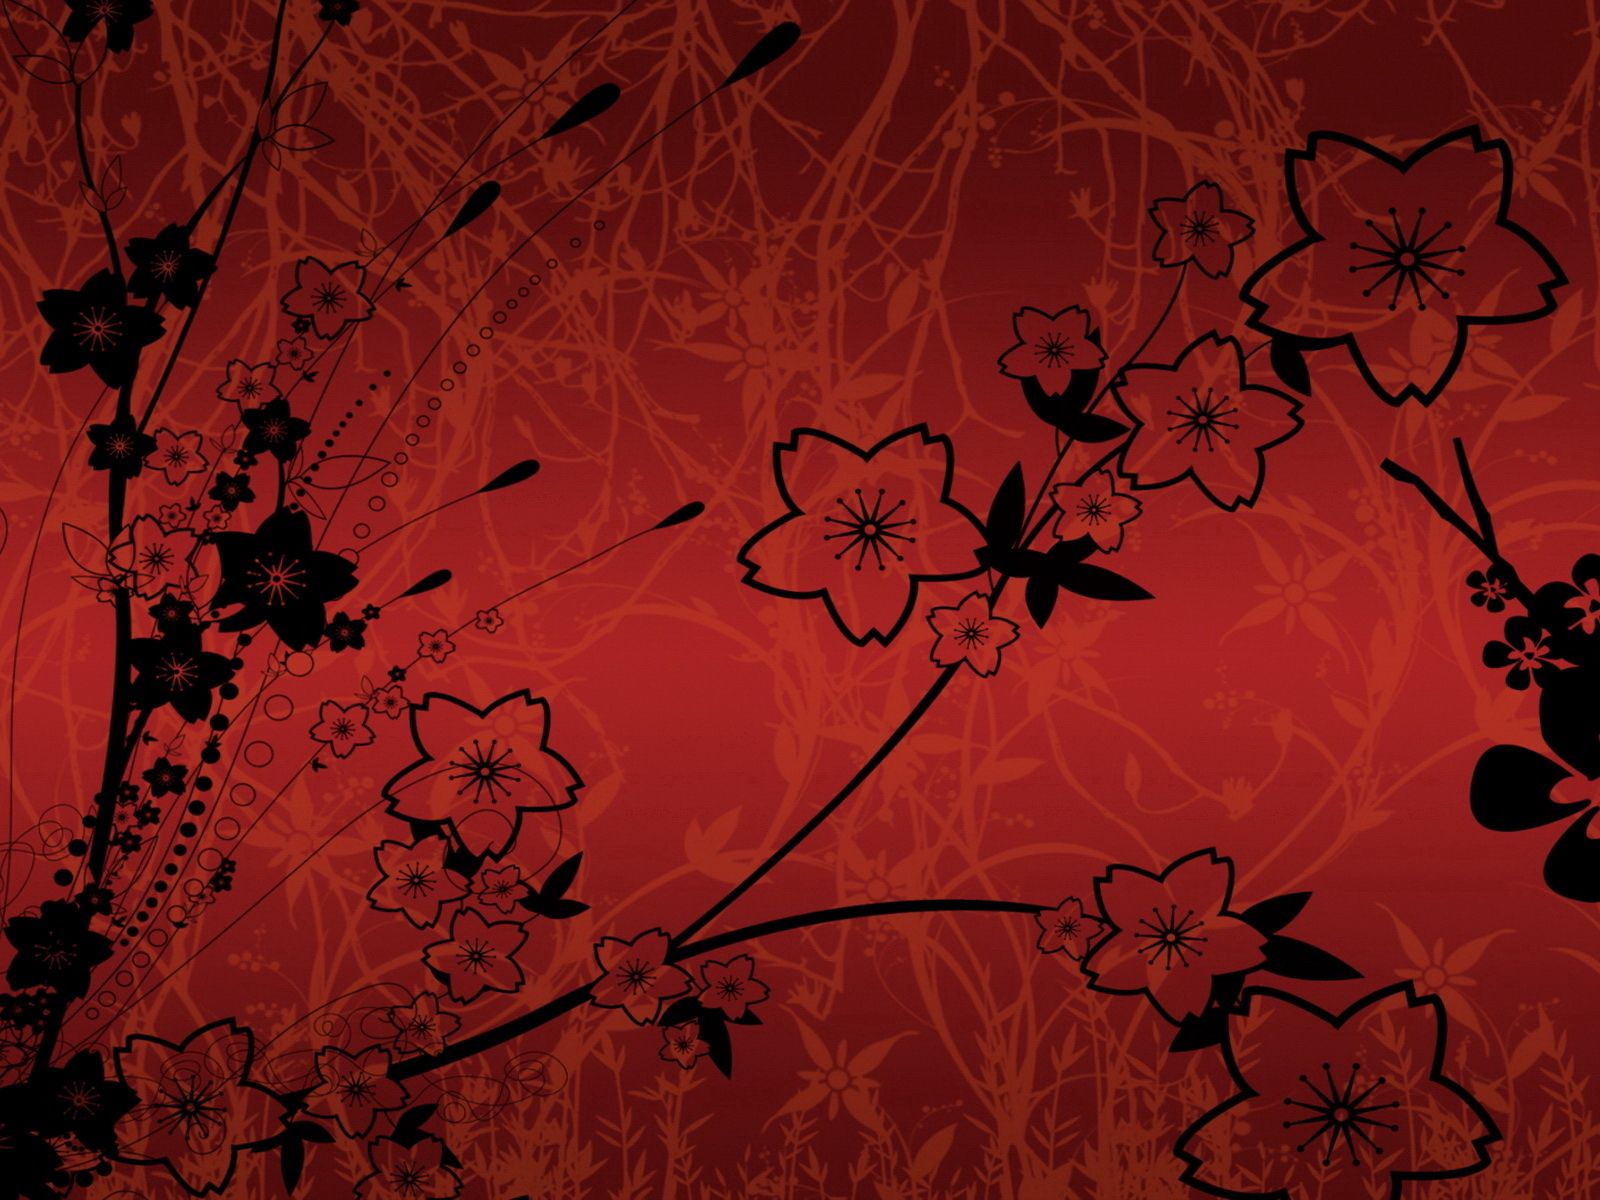 154840 download wallpaper Abstract, Background, Dark, Lines, Flowers screensavers and pictures for free